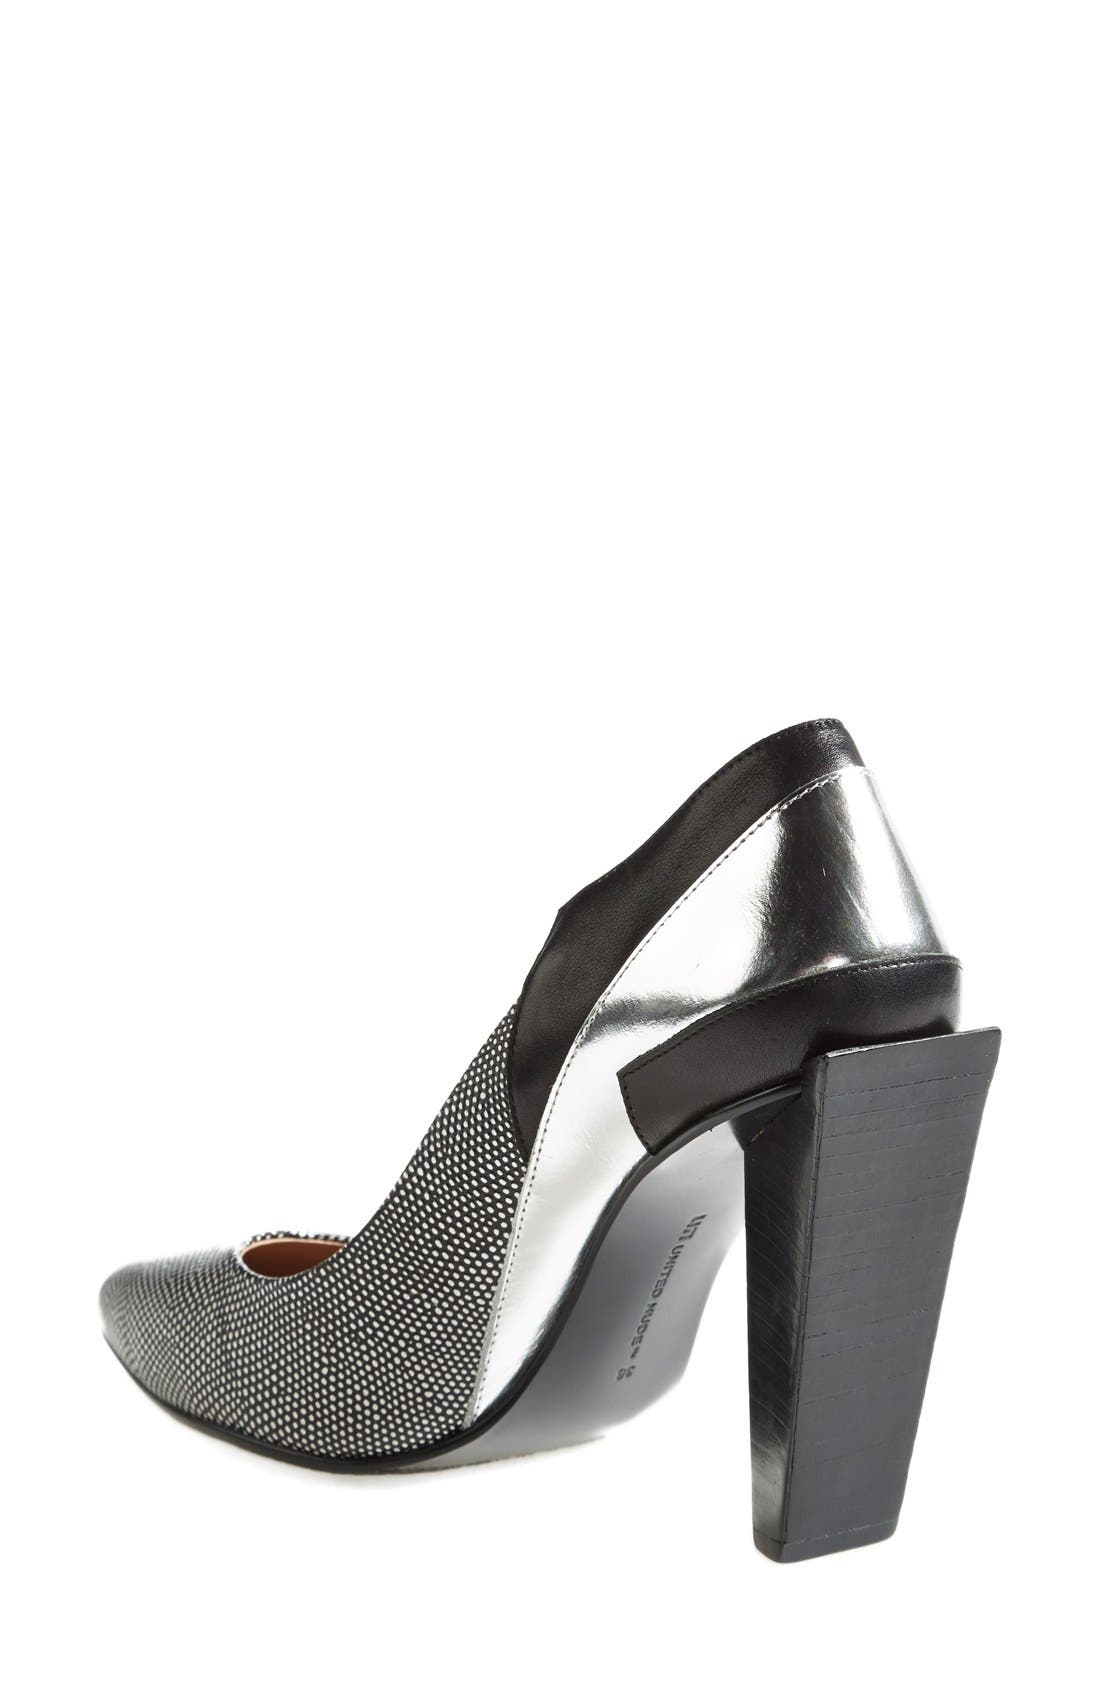 UNITED NUDE COLLECTION,                             'Ruby Hi' Pump,                             Alternate thumbnail 4, color,                             006